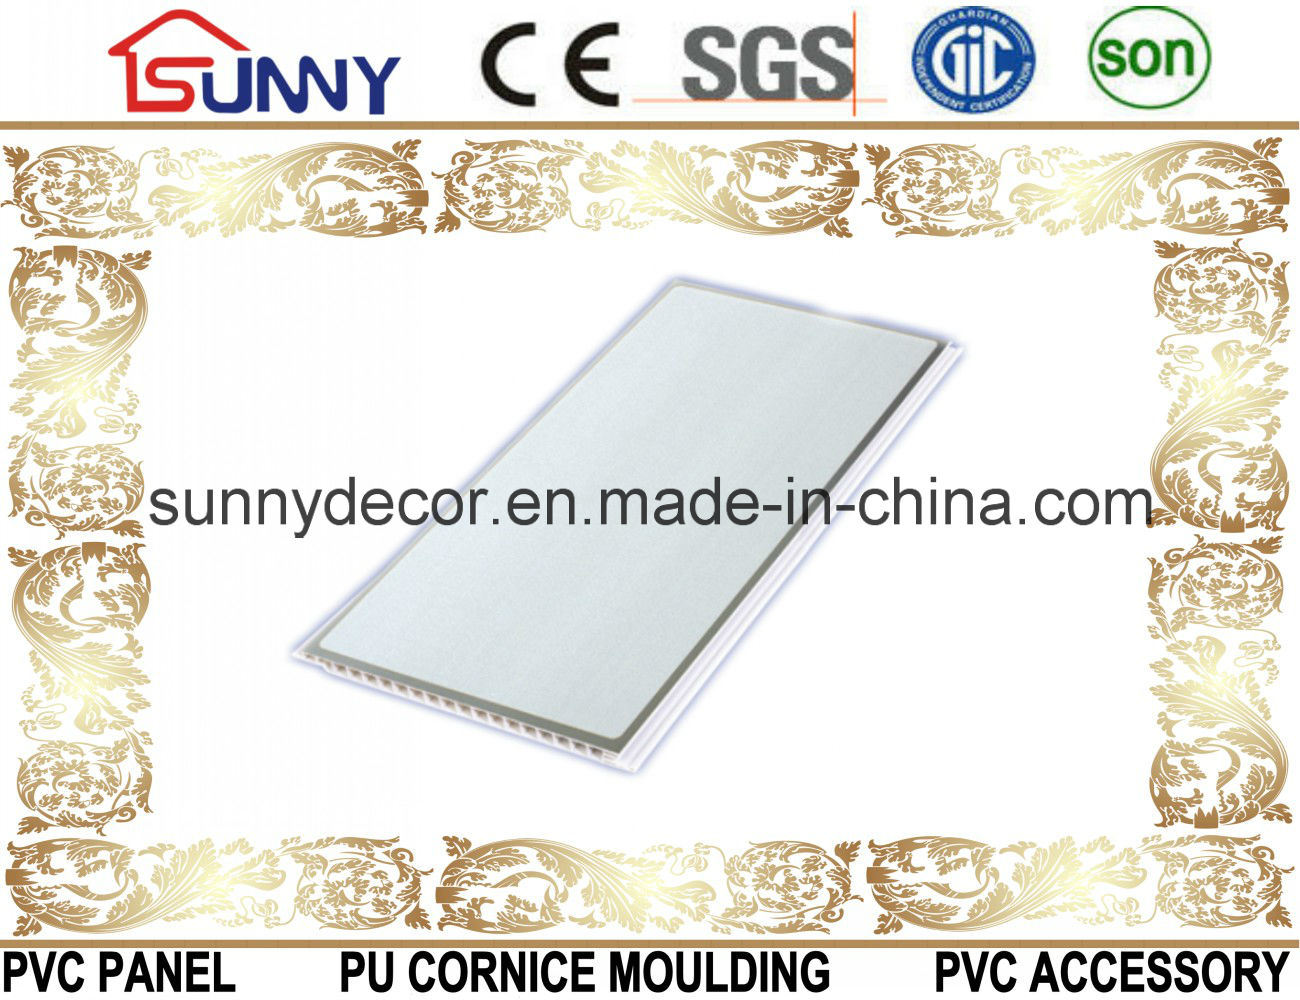 Lamination PVC Panel PVC Ceiling PVC Wall Panel Decoration Waterproof Material